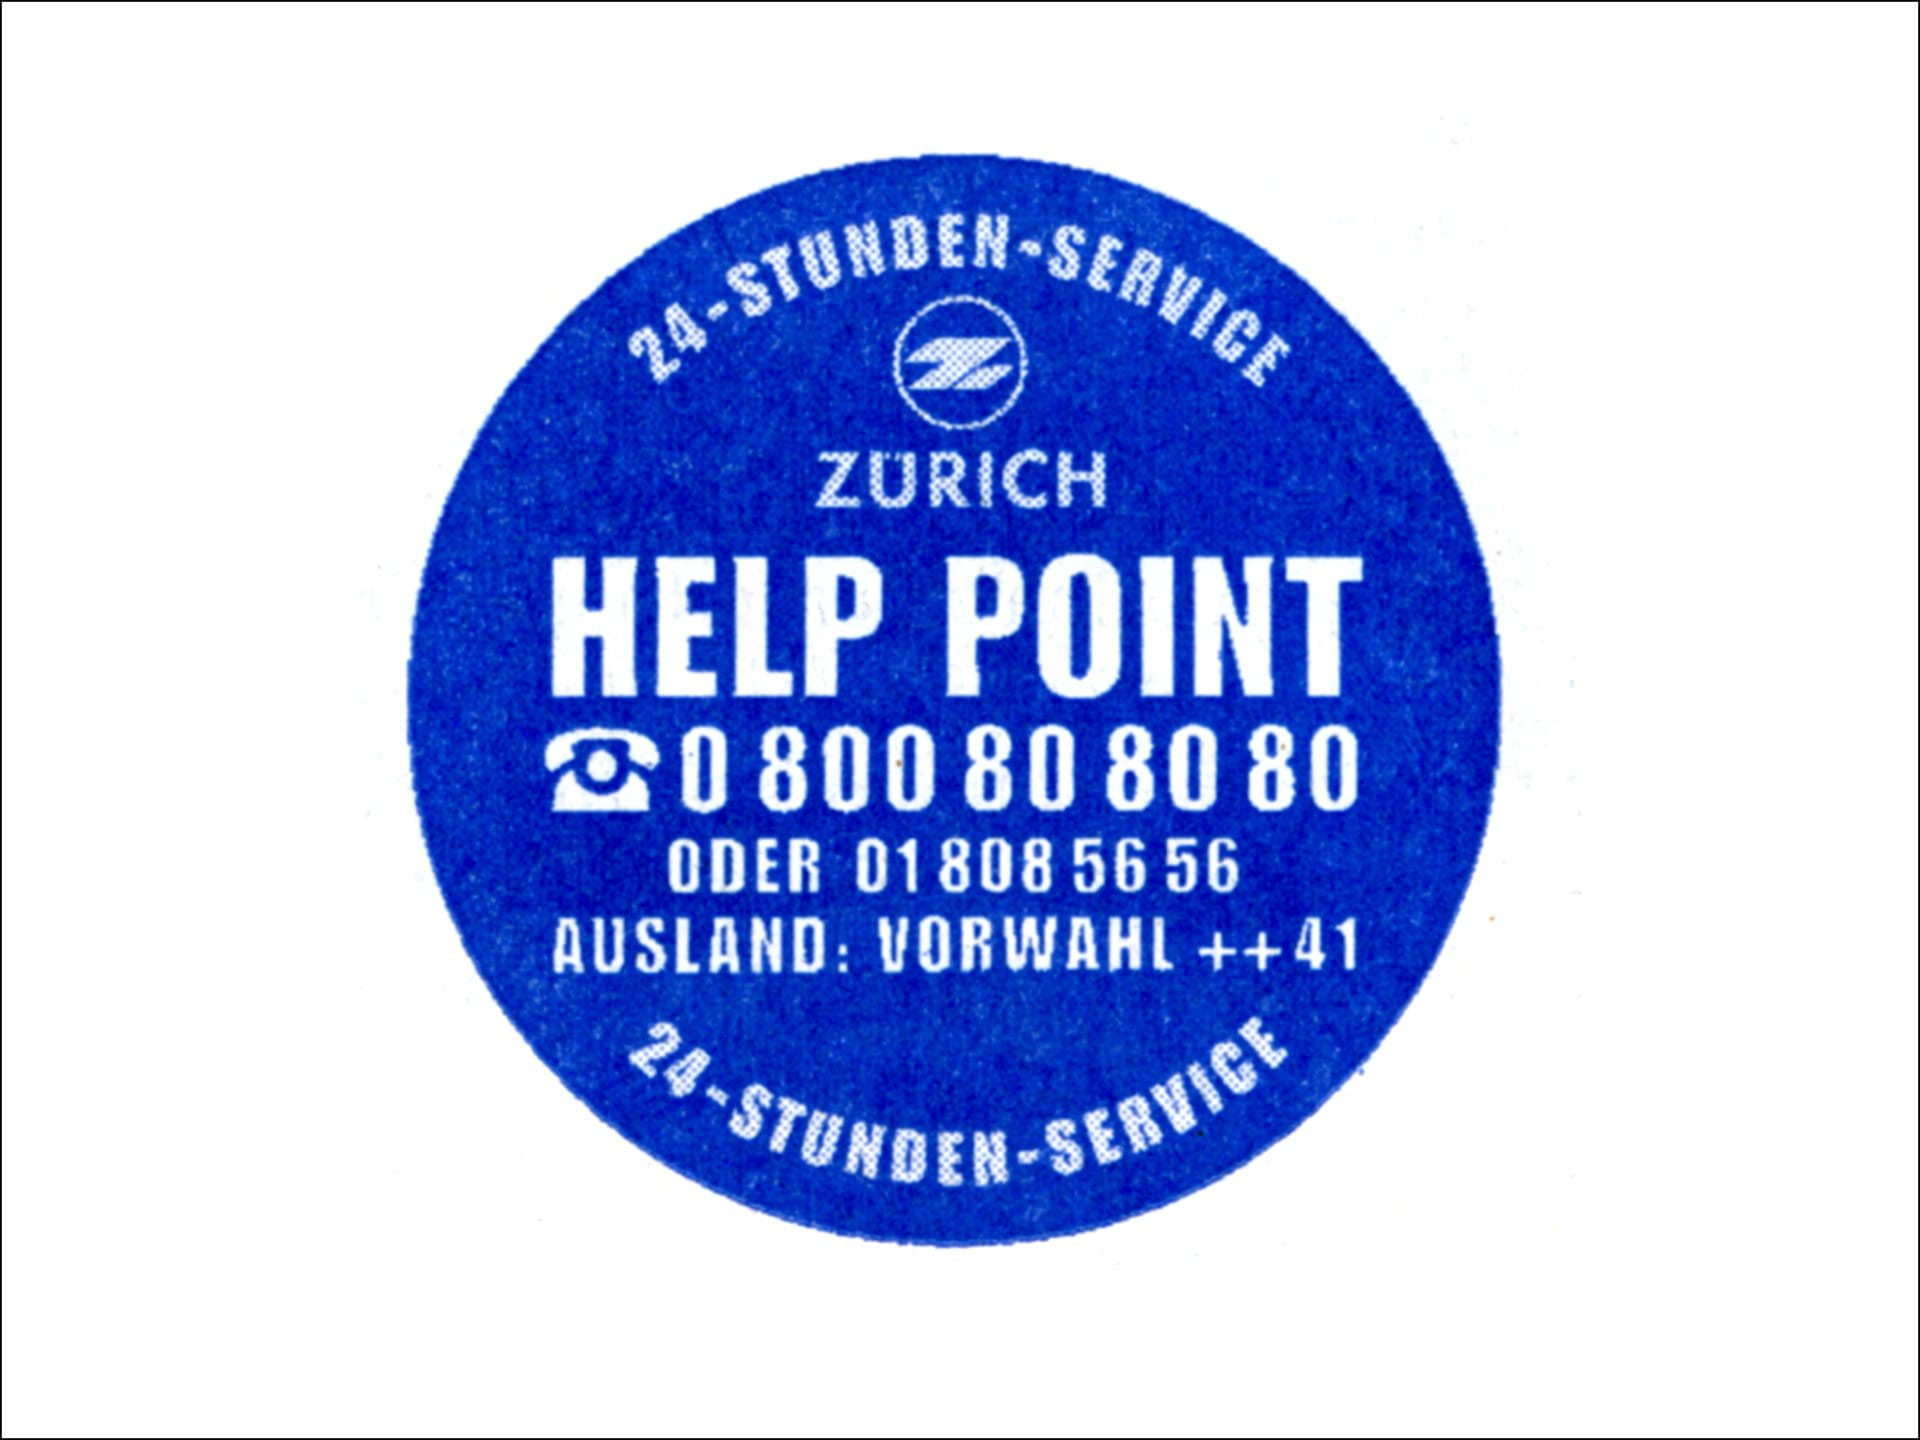 1997: Help Points introduced